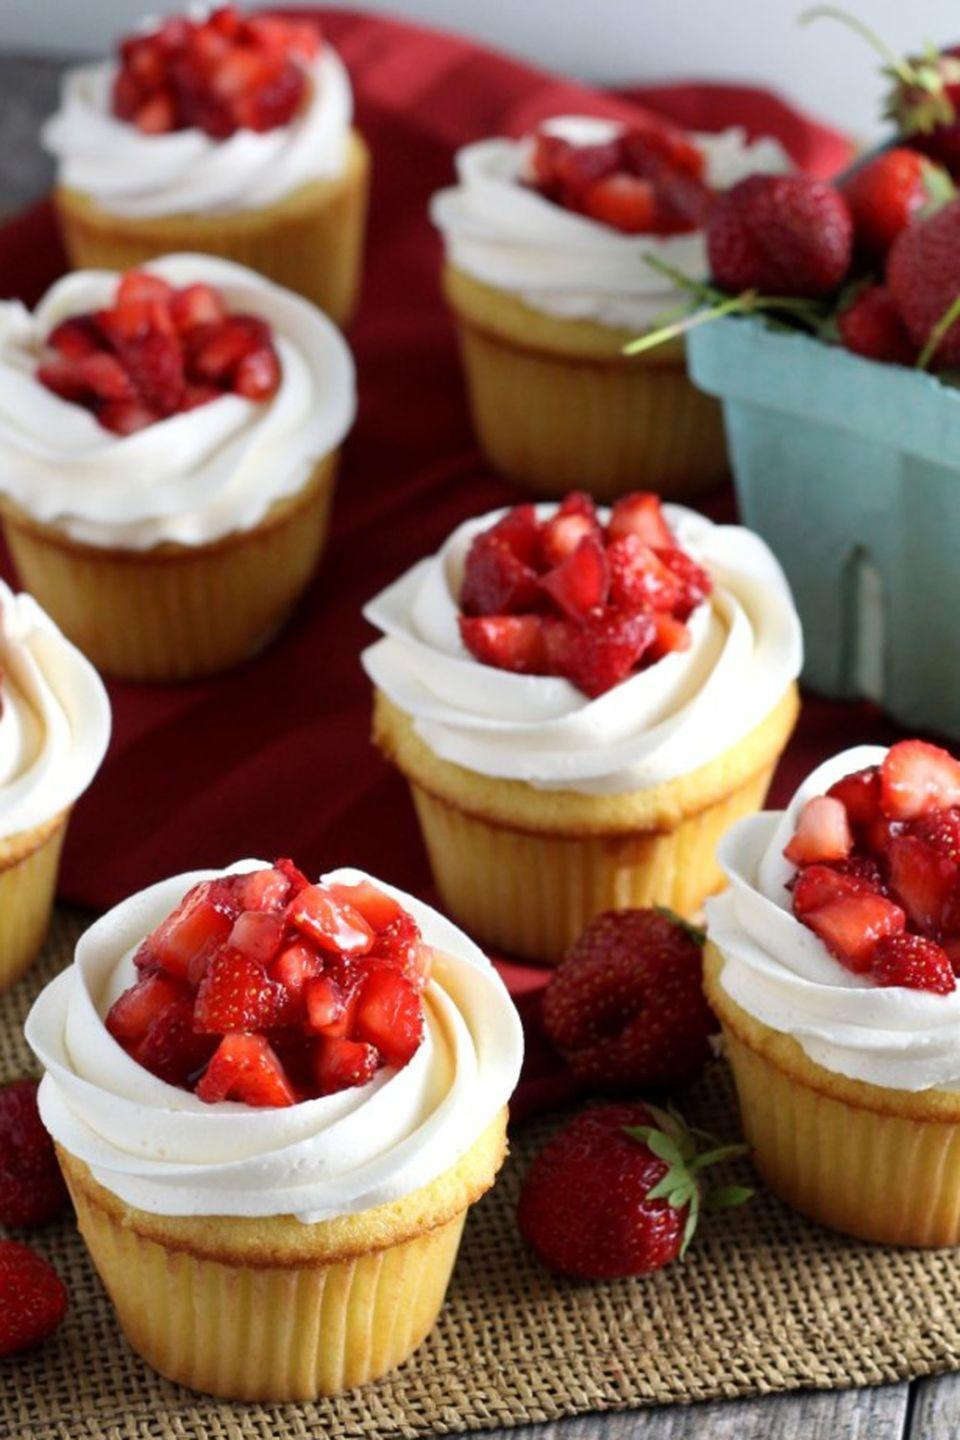 """<p>Strawberry shortcake is a springtime must-have. Avoid the mess of slicing cake by making individual cupcakes for your party guests. </p><p>Get the full recipe from <a href=""""http://chocolatewithgrace.com/strawberry-shortcake-cupcakes/"""" rel=""""nofollow noopener"""" target=""""_blank"""" data-ylk=""""slk:Chocolate with Grace"""" class=""""link rapid-noclick-resp"""">Chocolate with Grace</a>.</p>"""